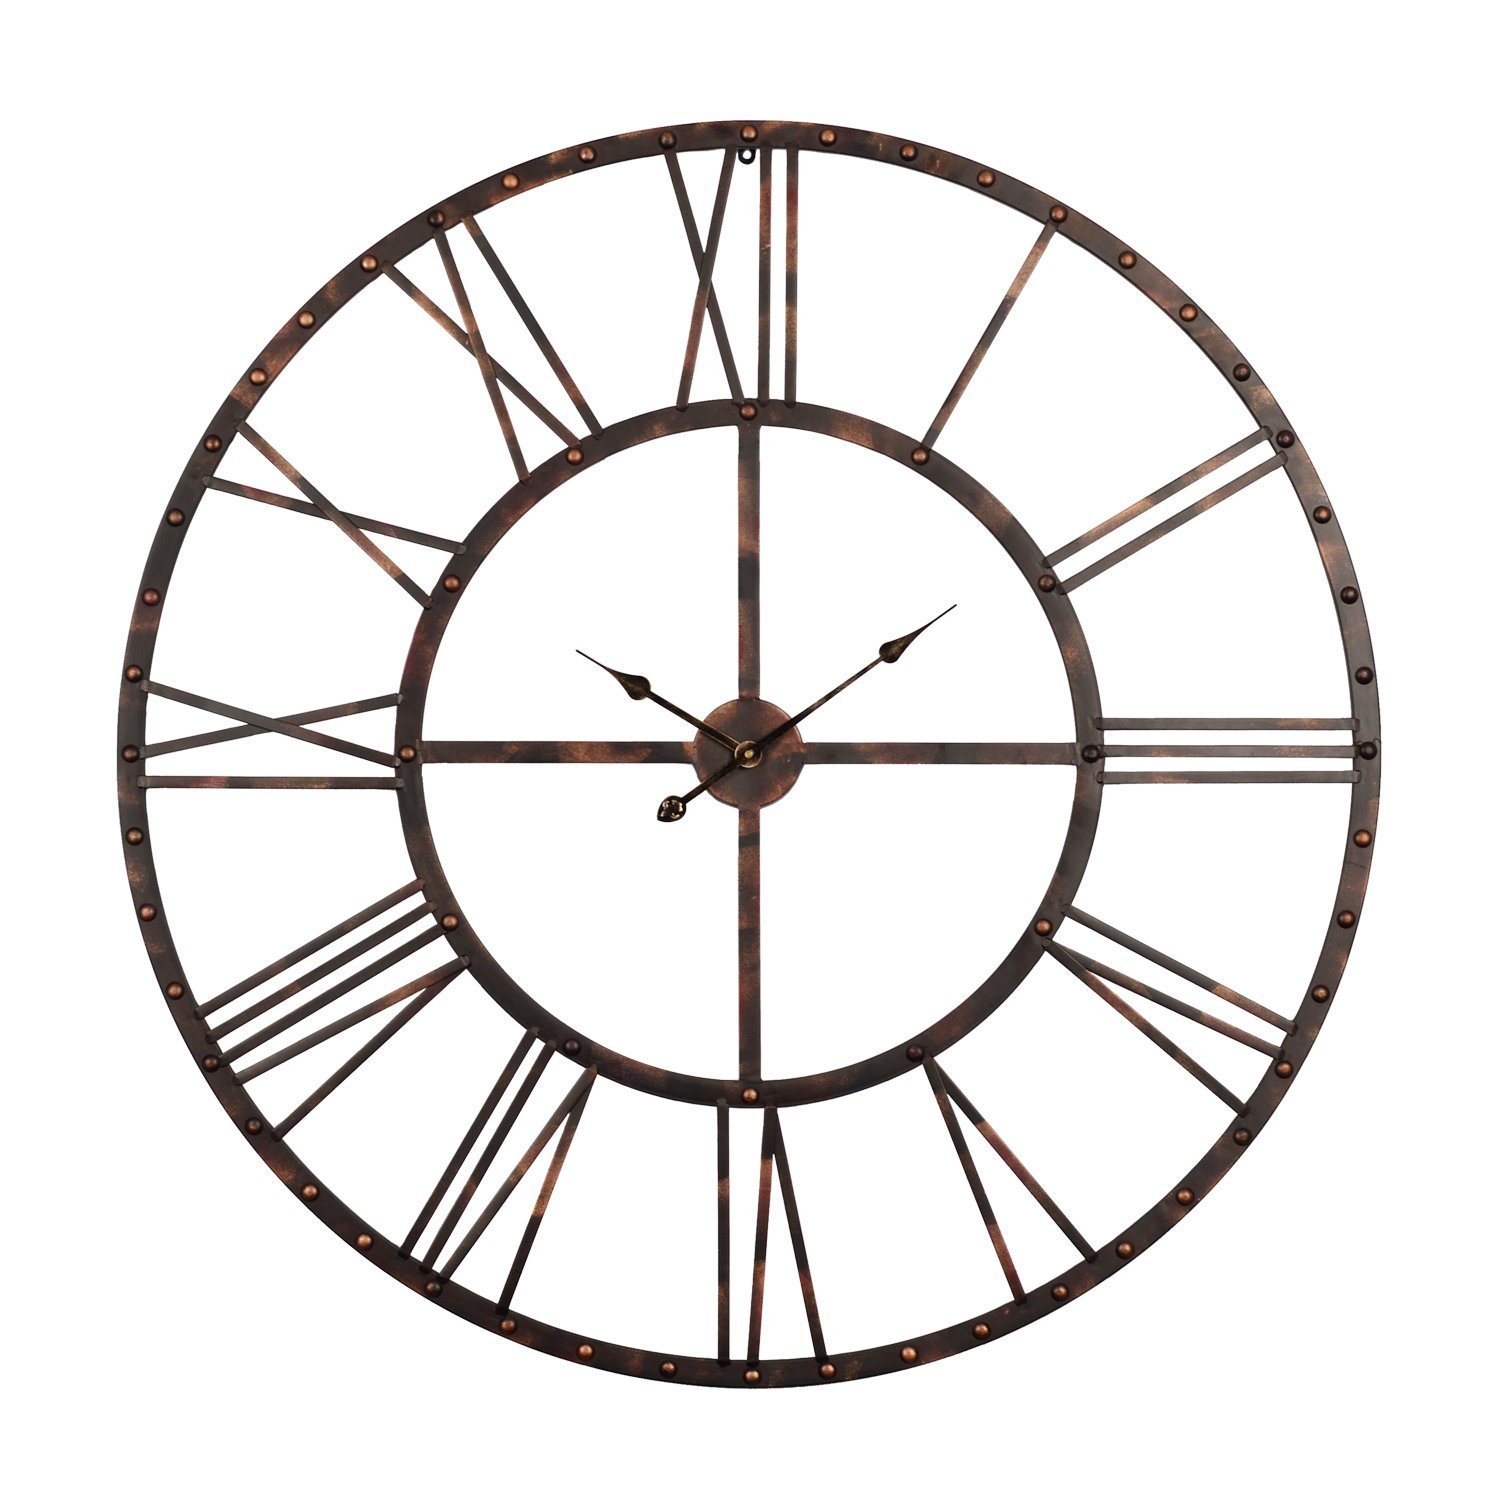 Utopia Alley Rivet Roman Industrial Oversize Wall Clock, Antique Bronze, 45'' L x 45'' H by Utopia Alley